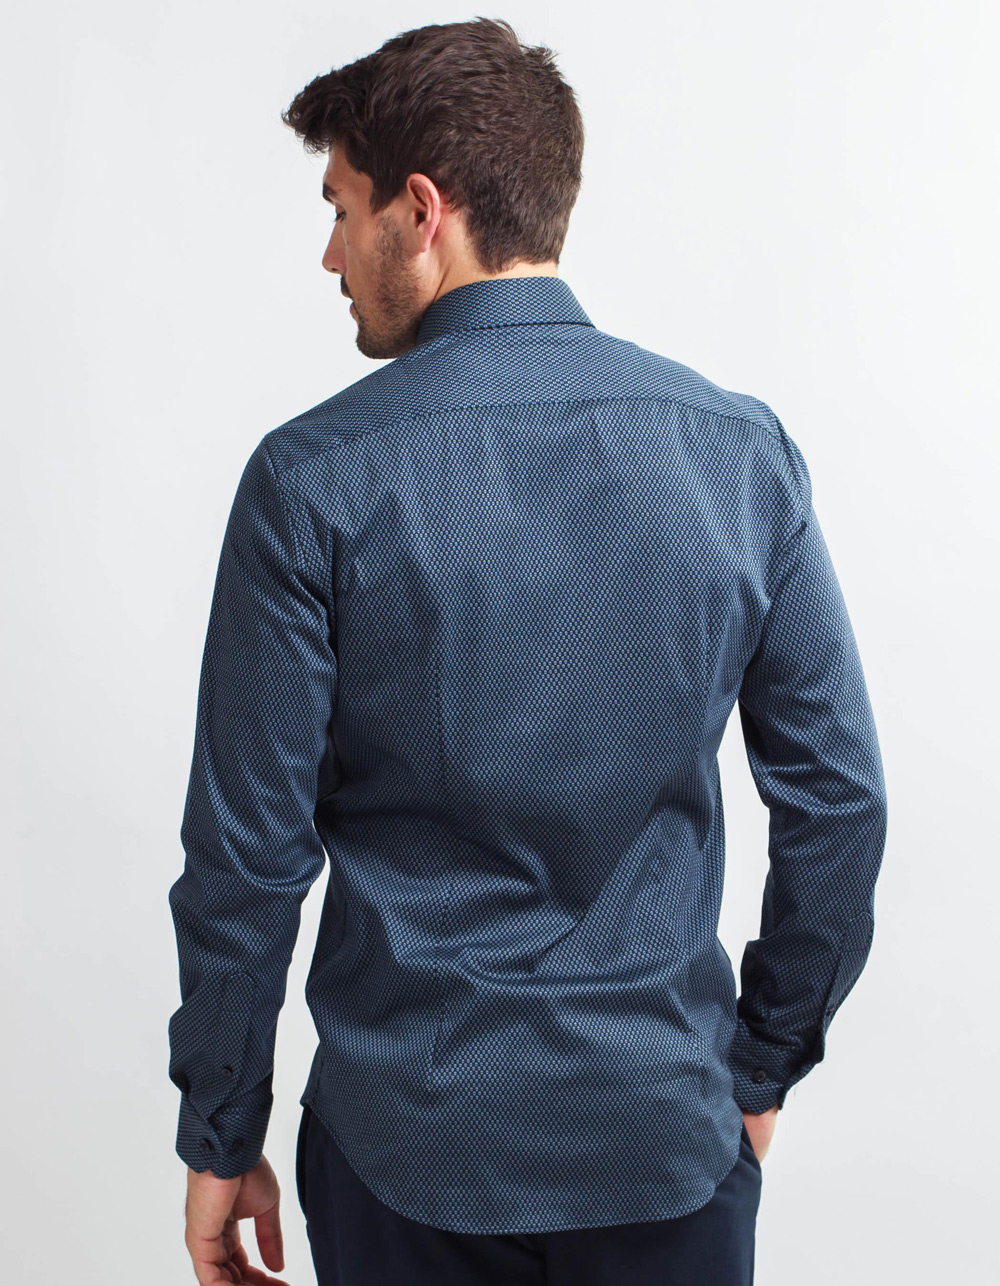 Dark navy Knit shirt  - Backside